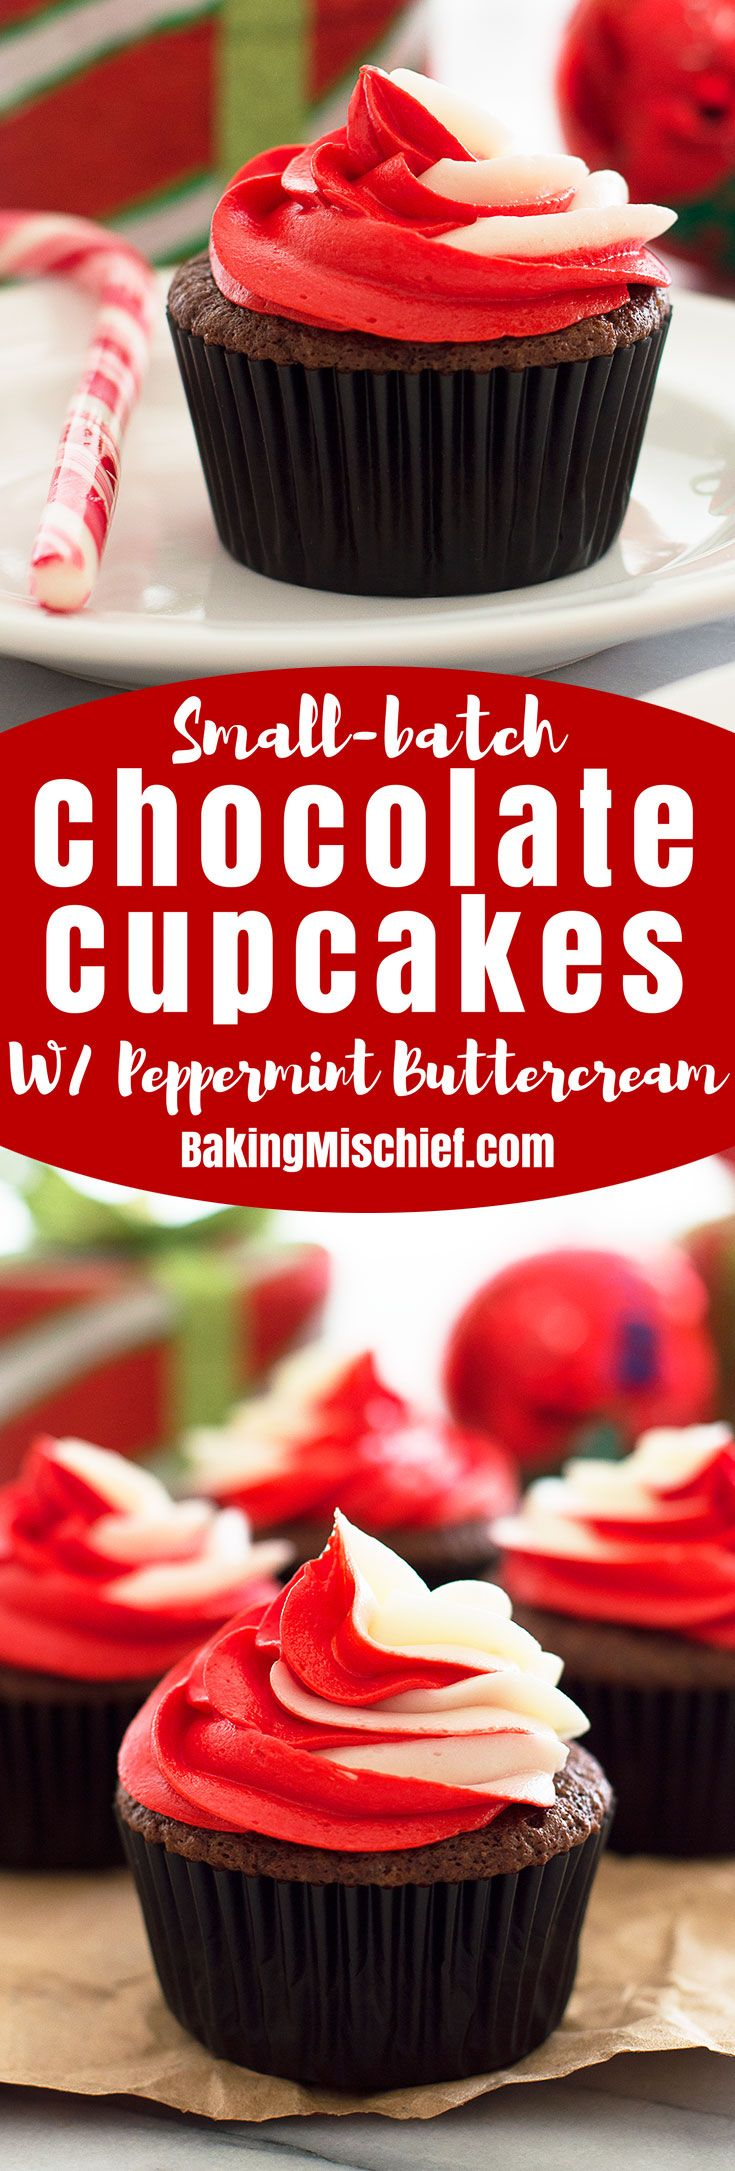 A recipe for four perfect and adorable small-batch chocolate cupcakes with peppermint buttercream from my new cookbook, Baking for Two. Recipe includes nutritional information. From BakingMischief.com